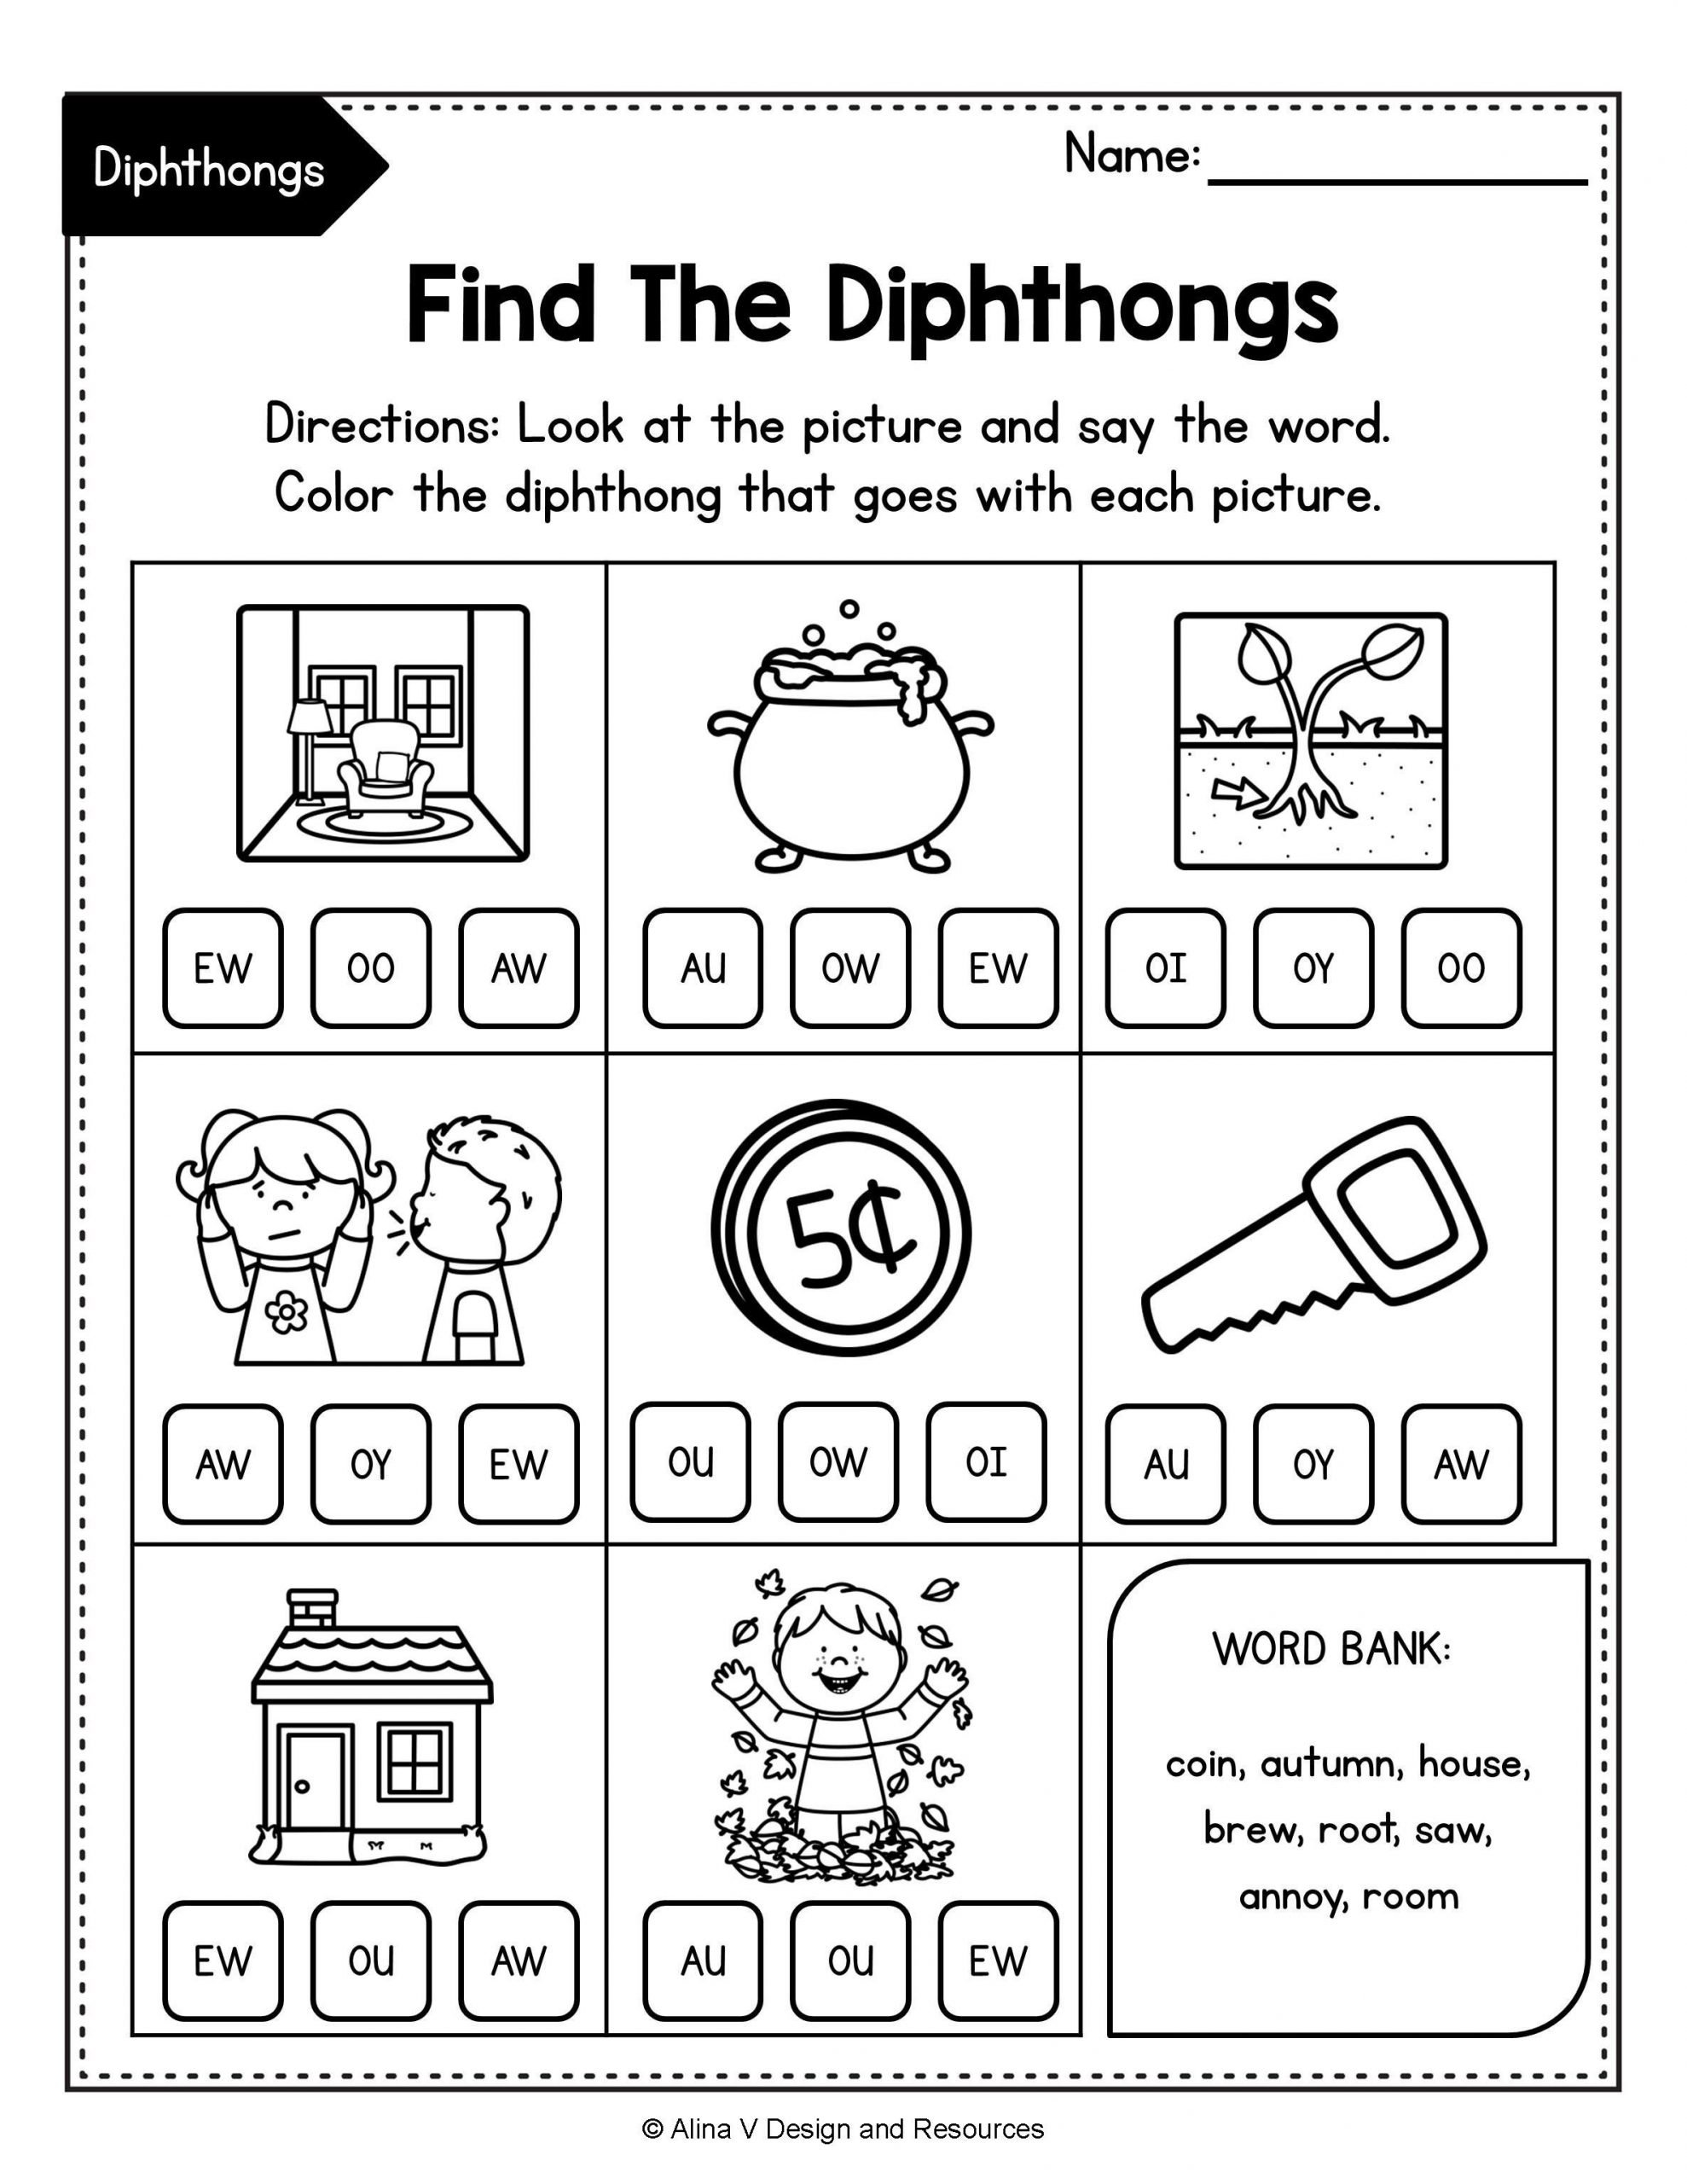 Diphthongs Worksheets Pdf Diphthong Activities Bundle Diphthong Activities Vowel